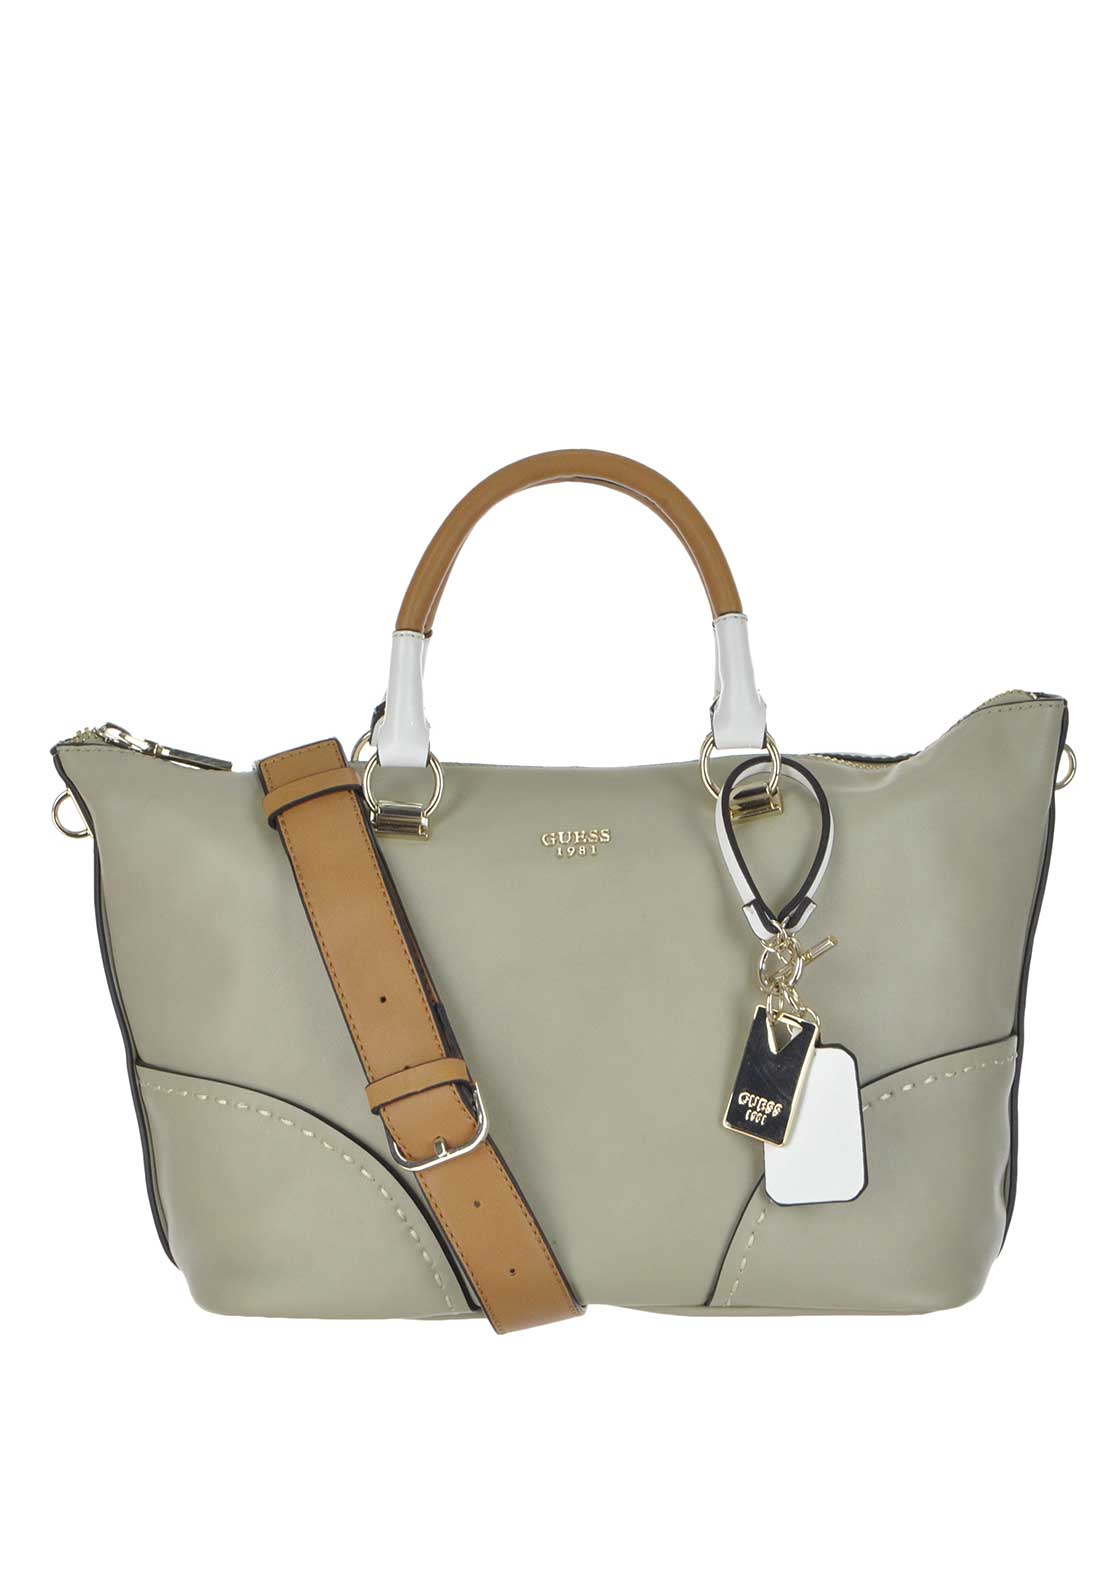 Guess Juliana Satchel Bag, Multi Nude